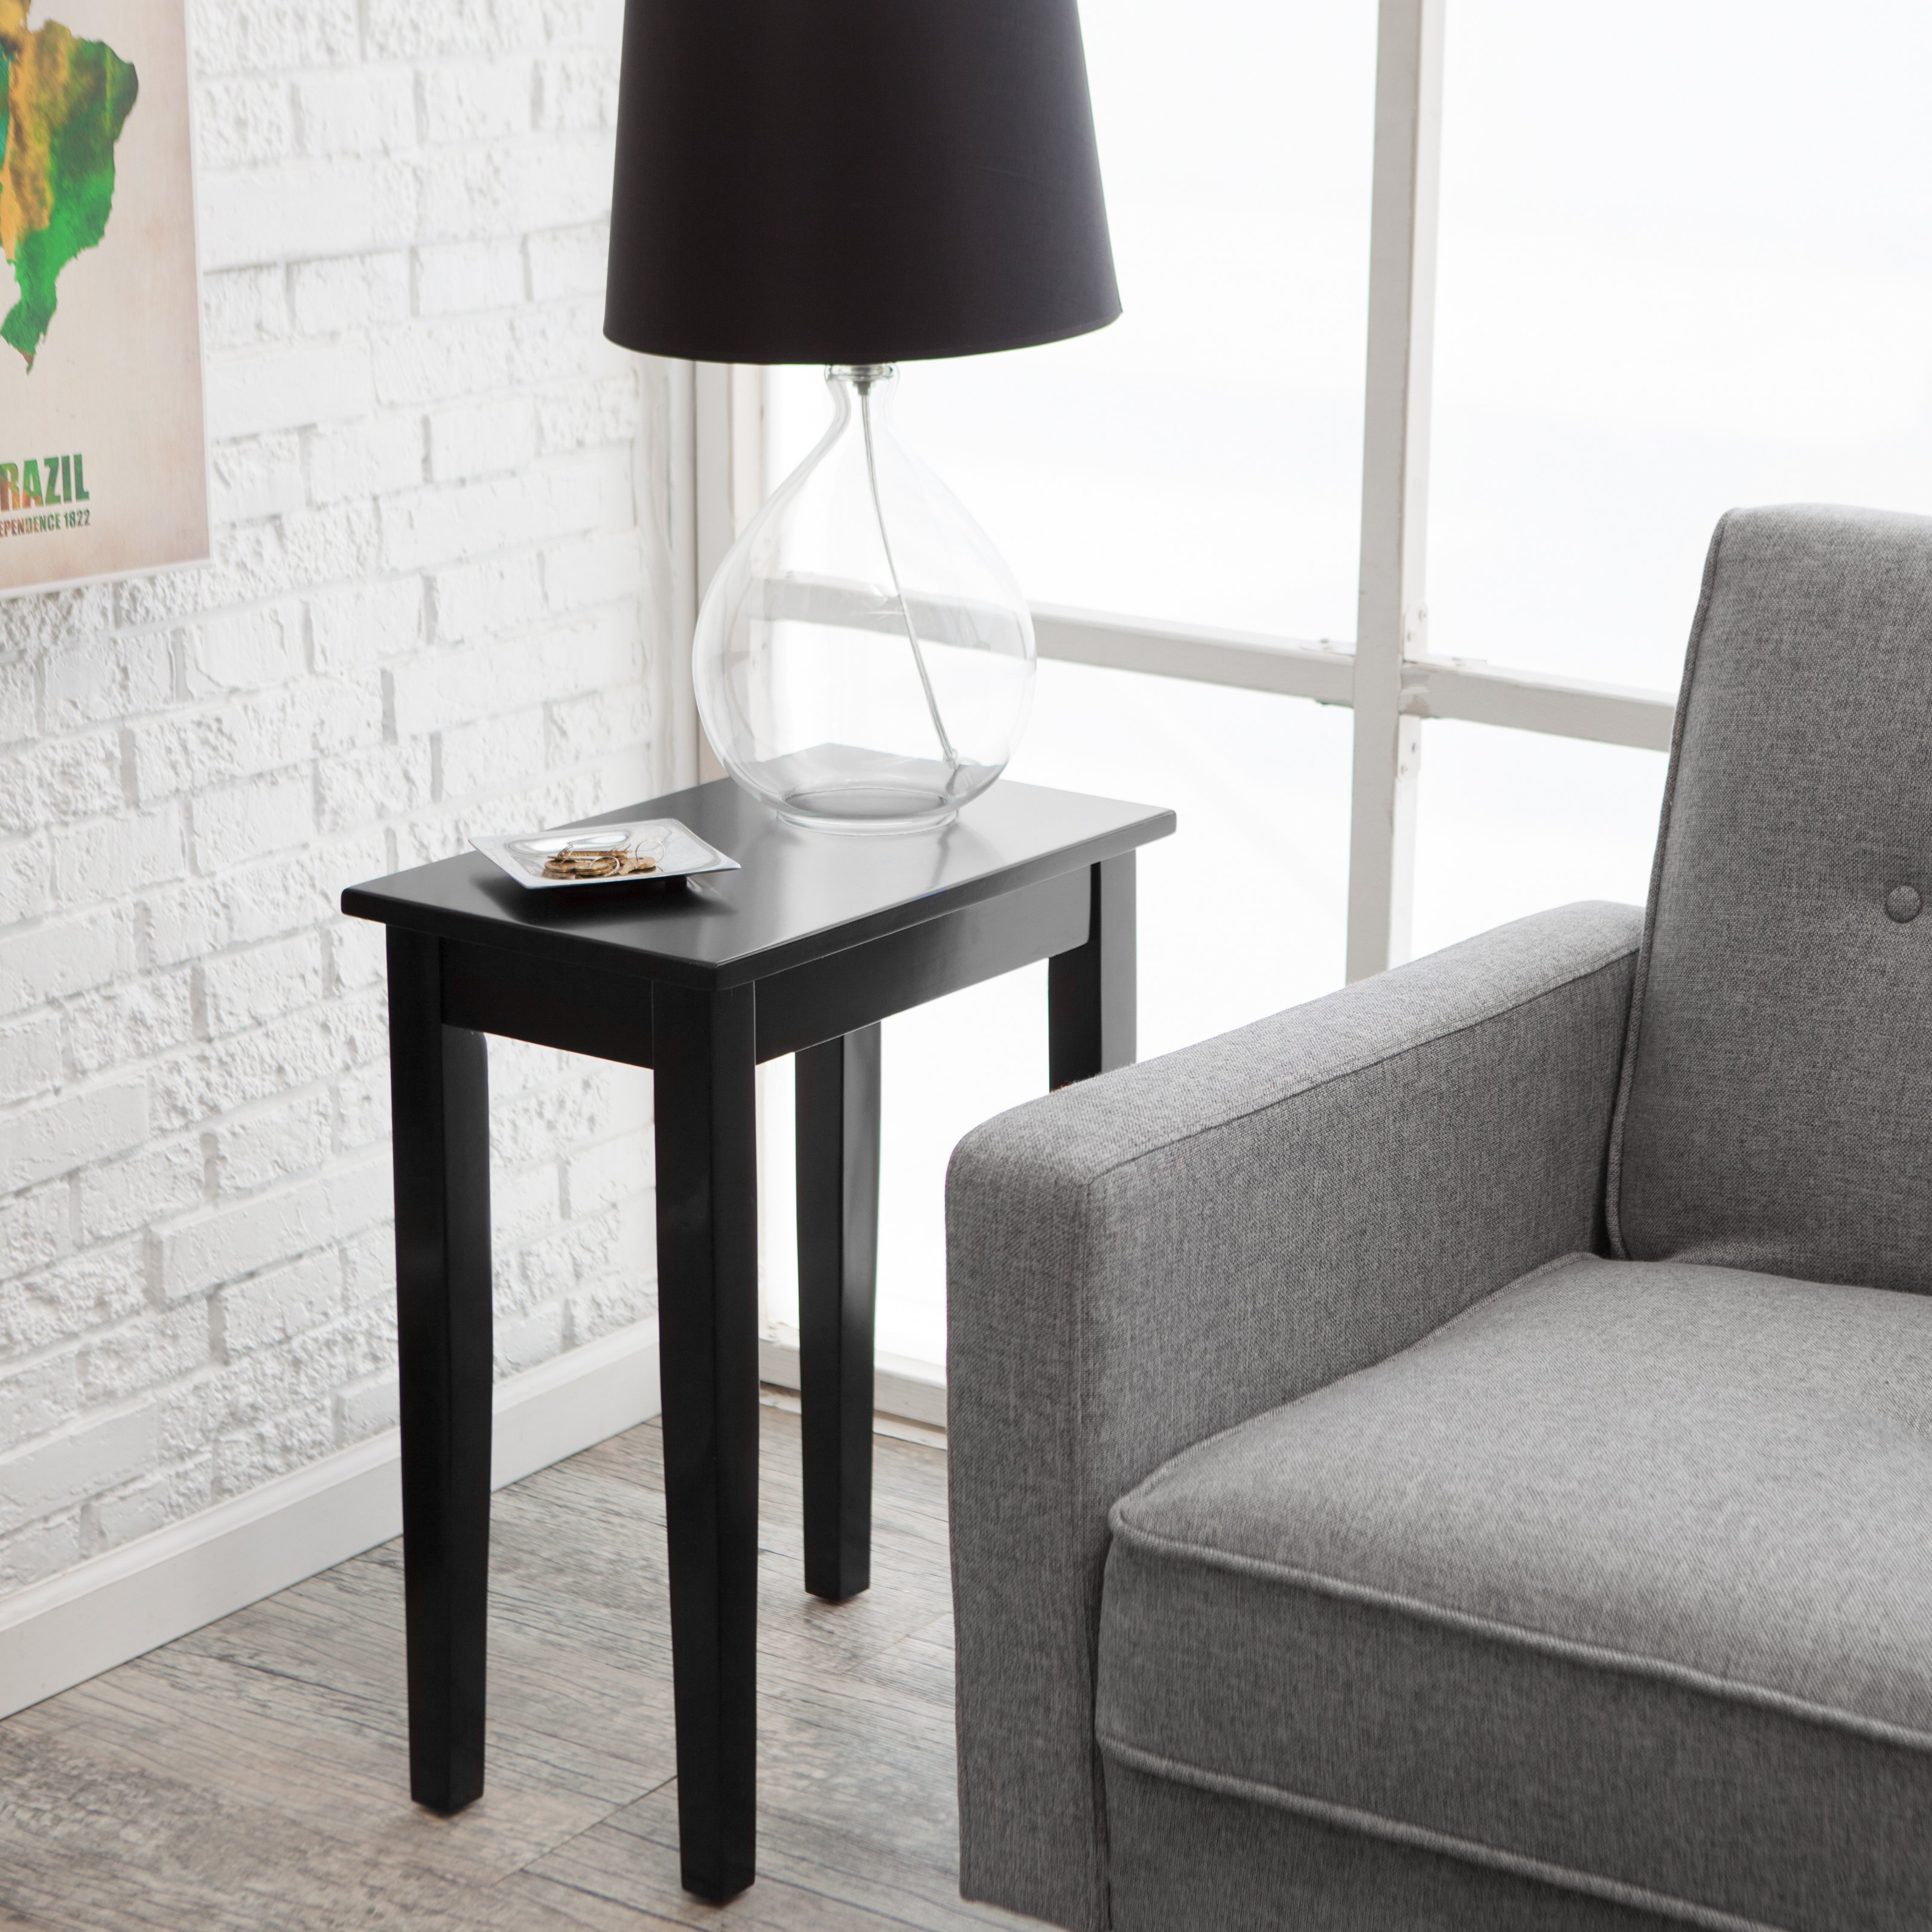 storage end table living decorations decorating tables center narrow wooden glass for land leather side lamp centerpieces rooms modern room white centre oak ideas furniture